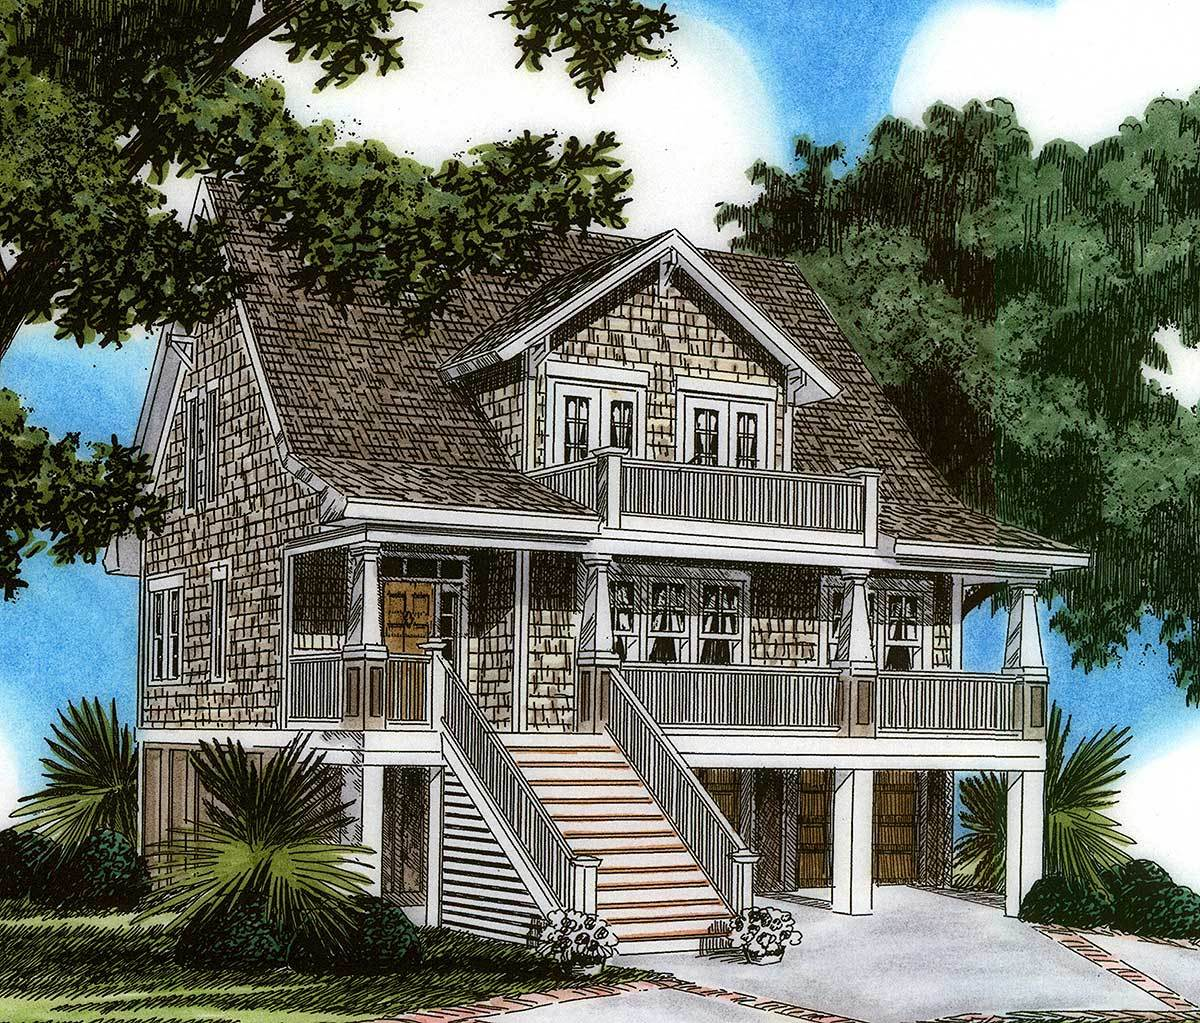 Raised house plan living 15023nc architectural designs for Elevated floor plans